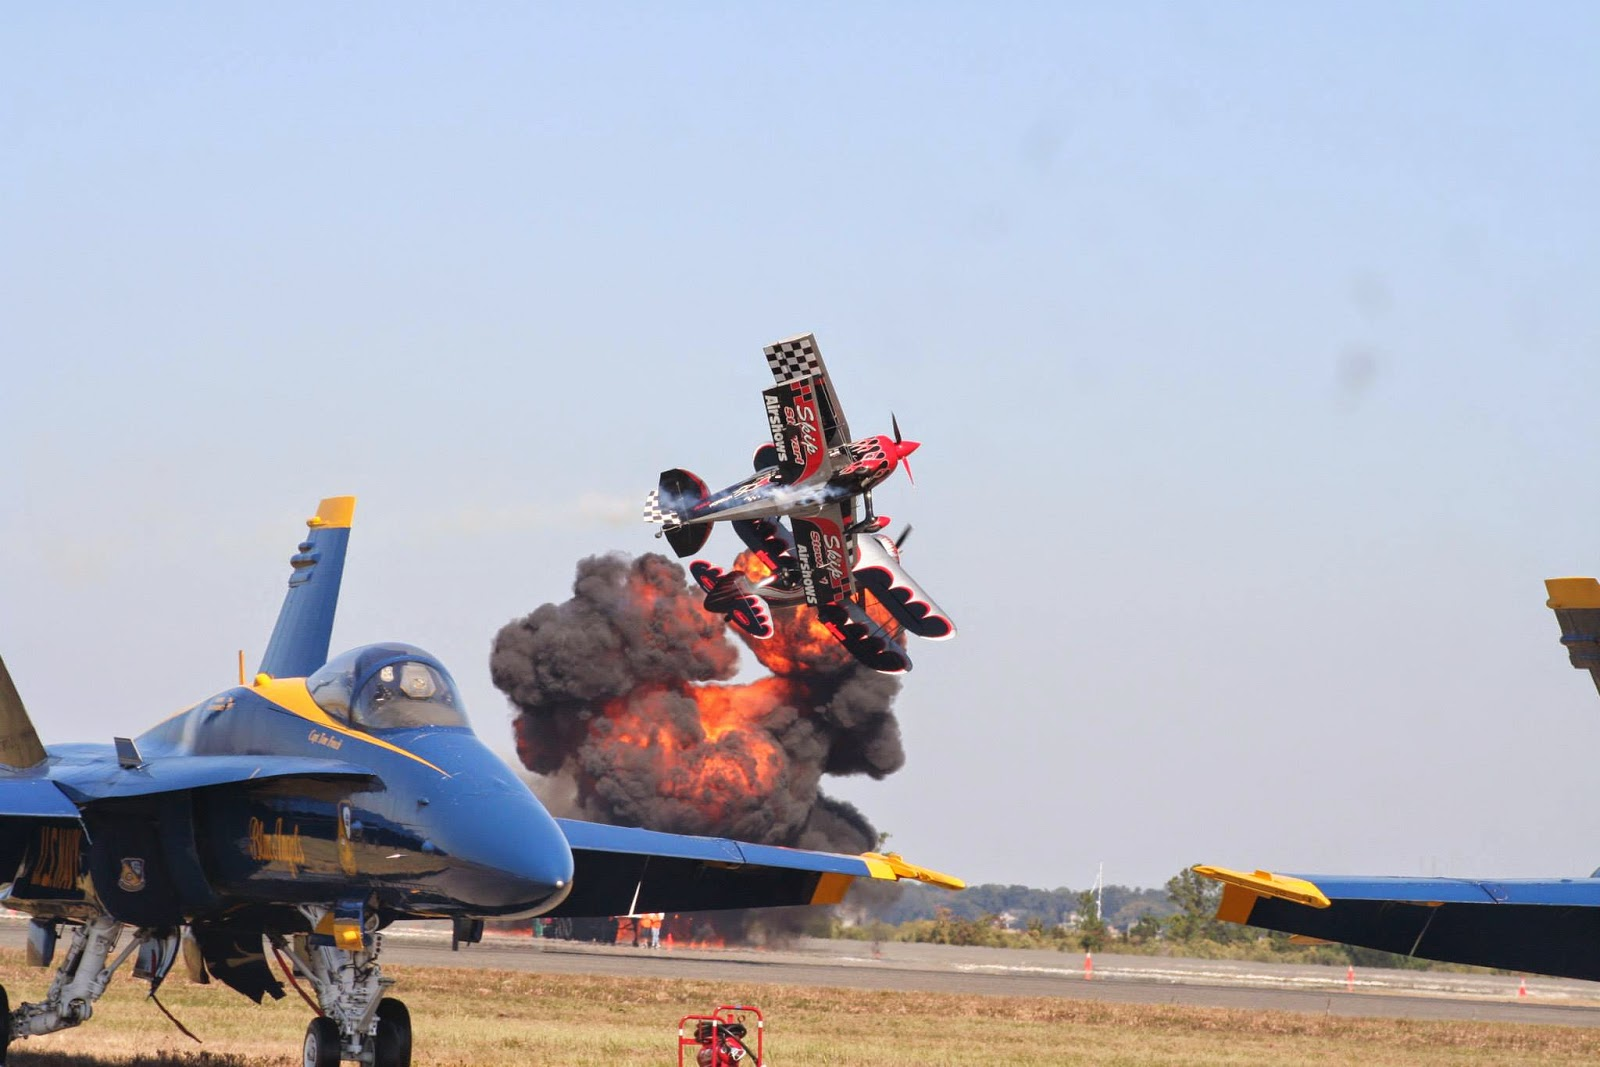 The Immortals air show